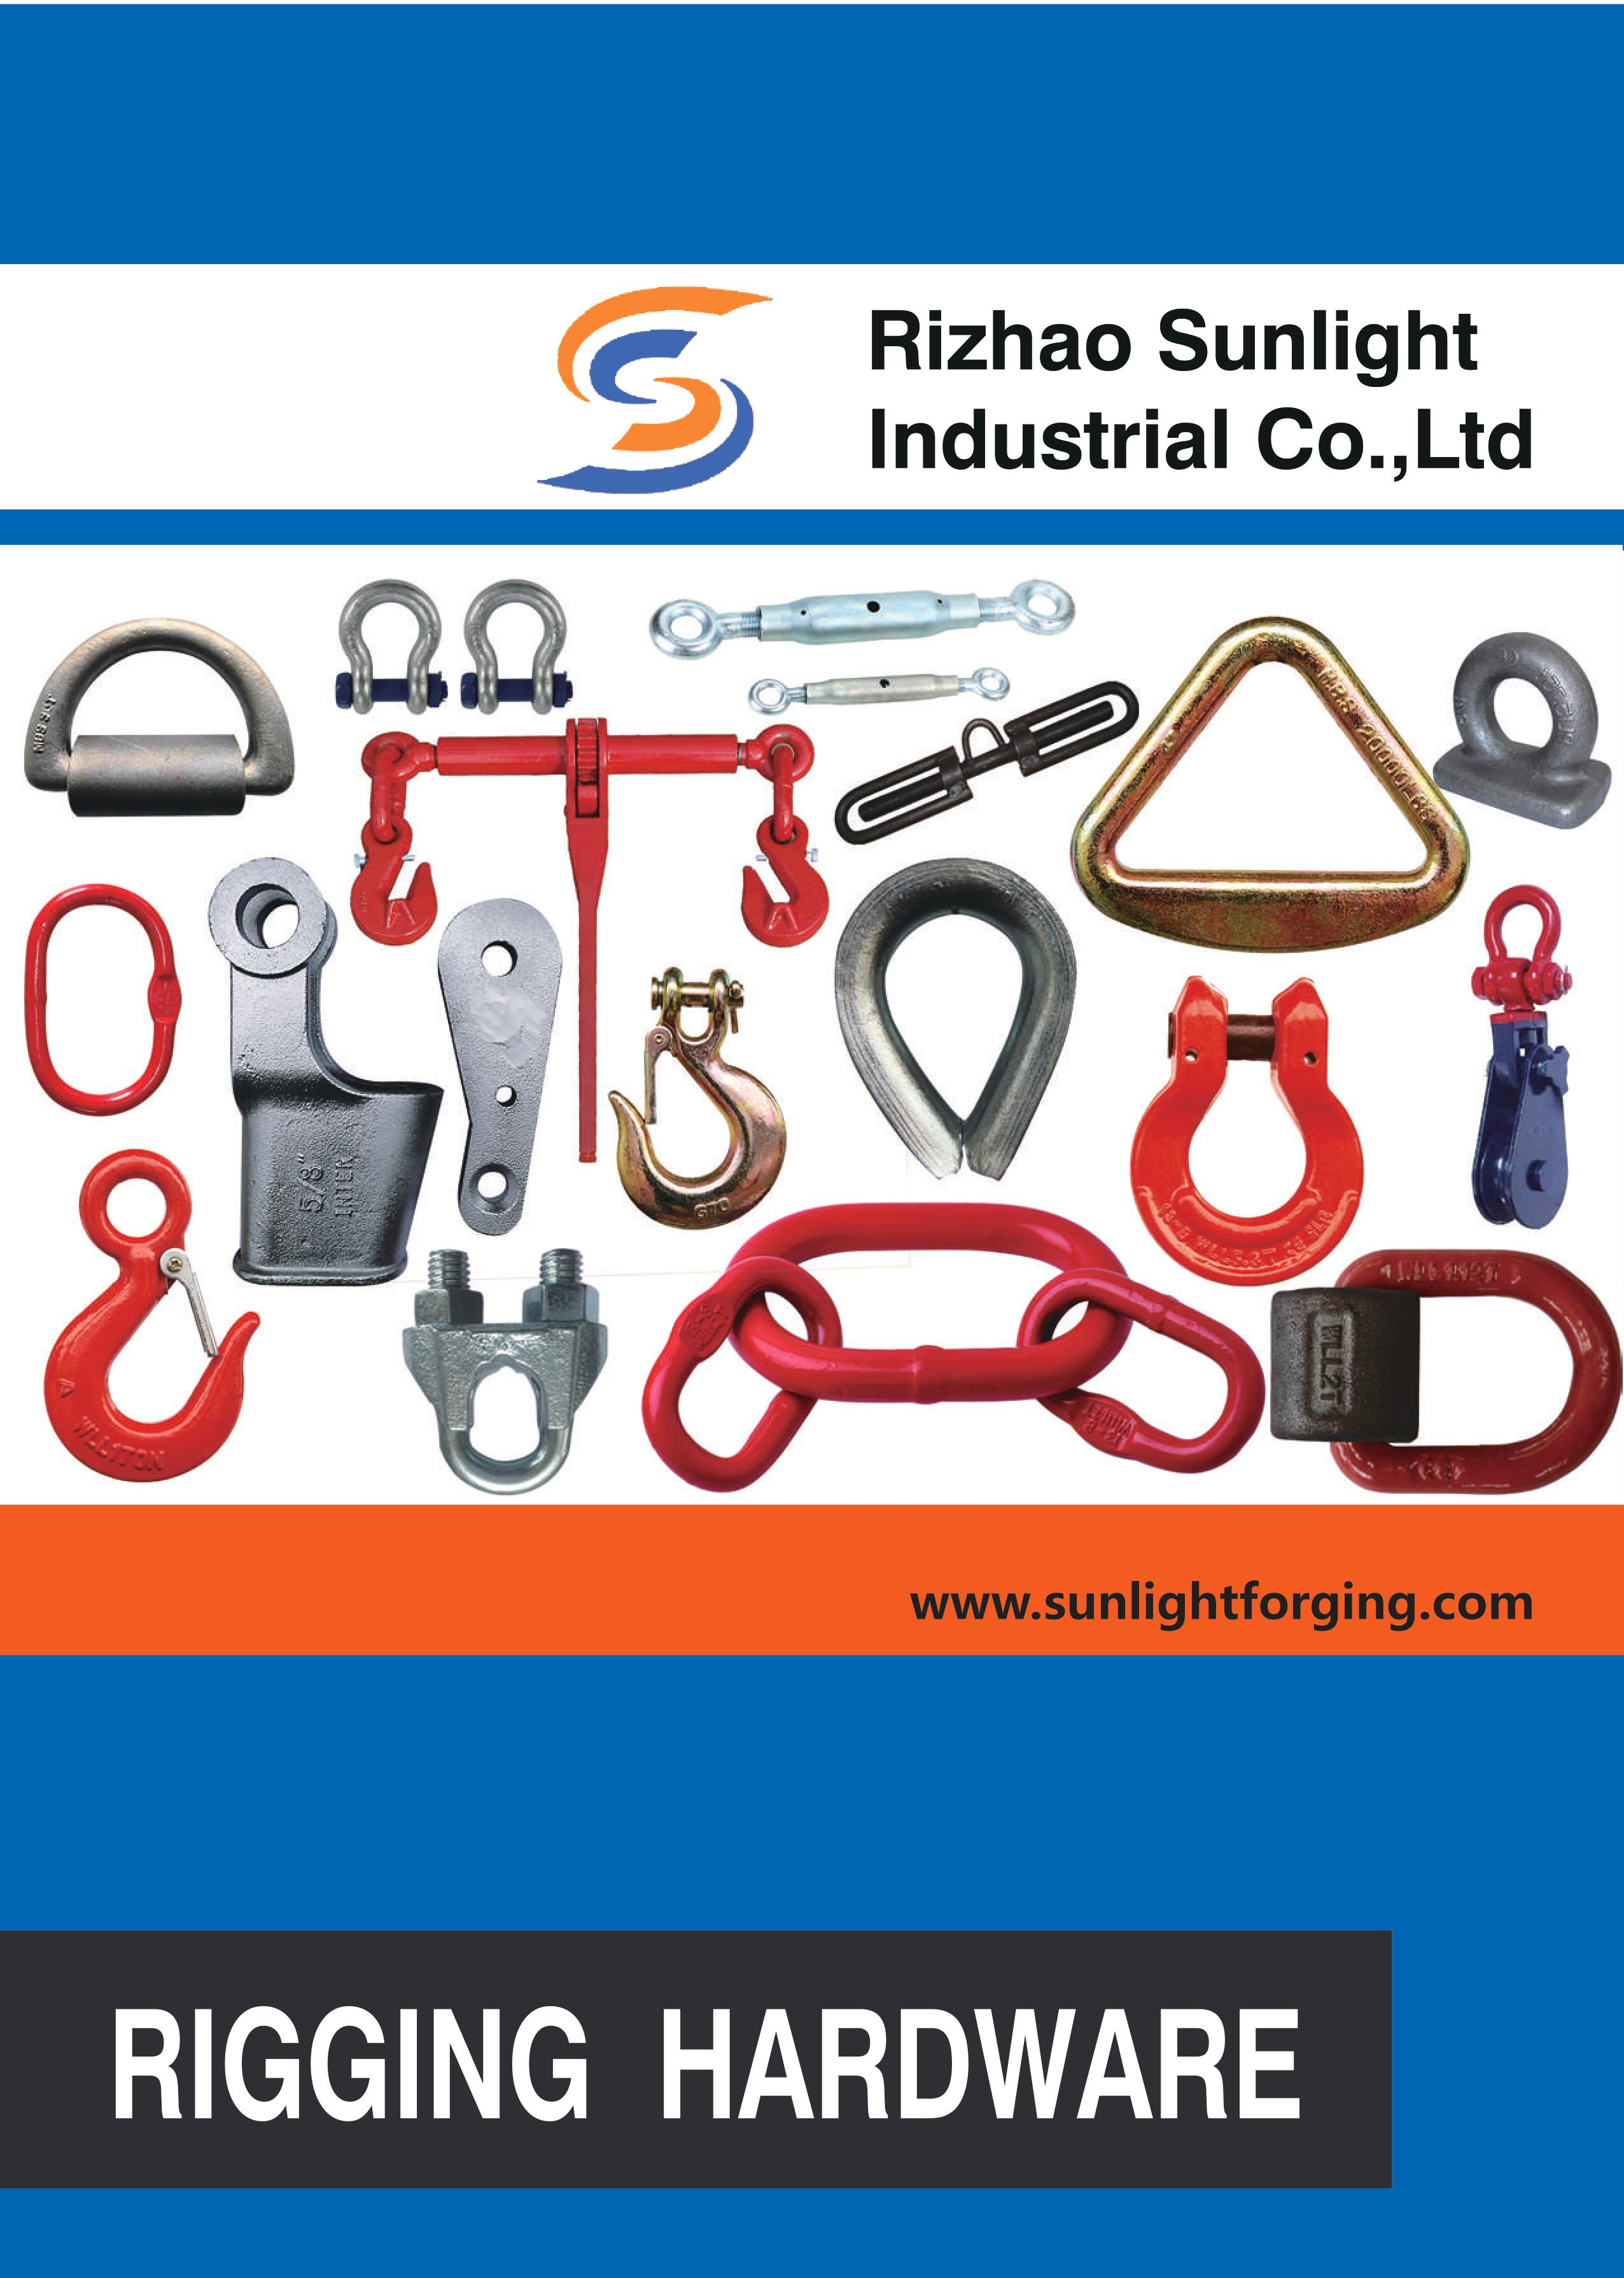 rigging hardware from rizhao sunlight